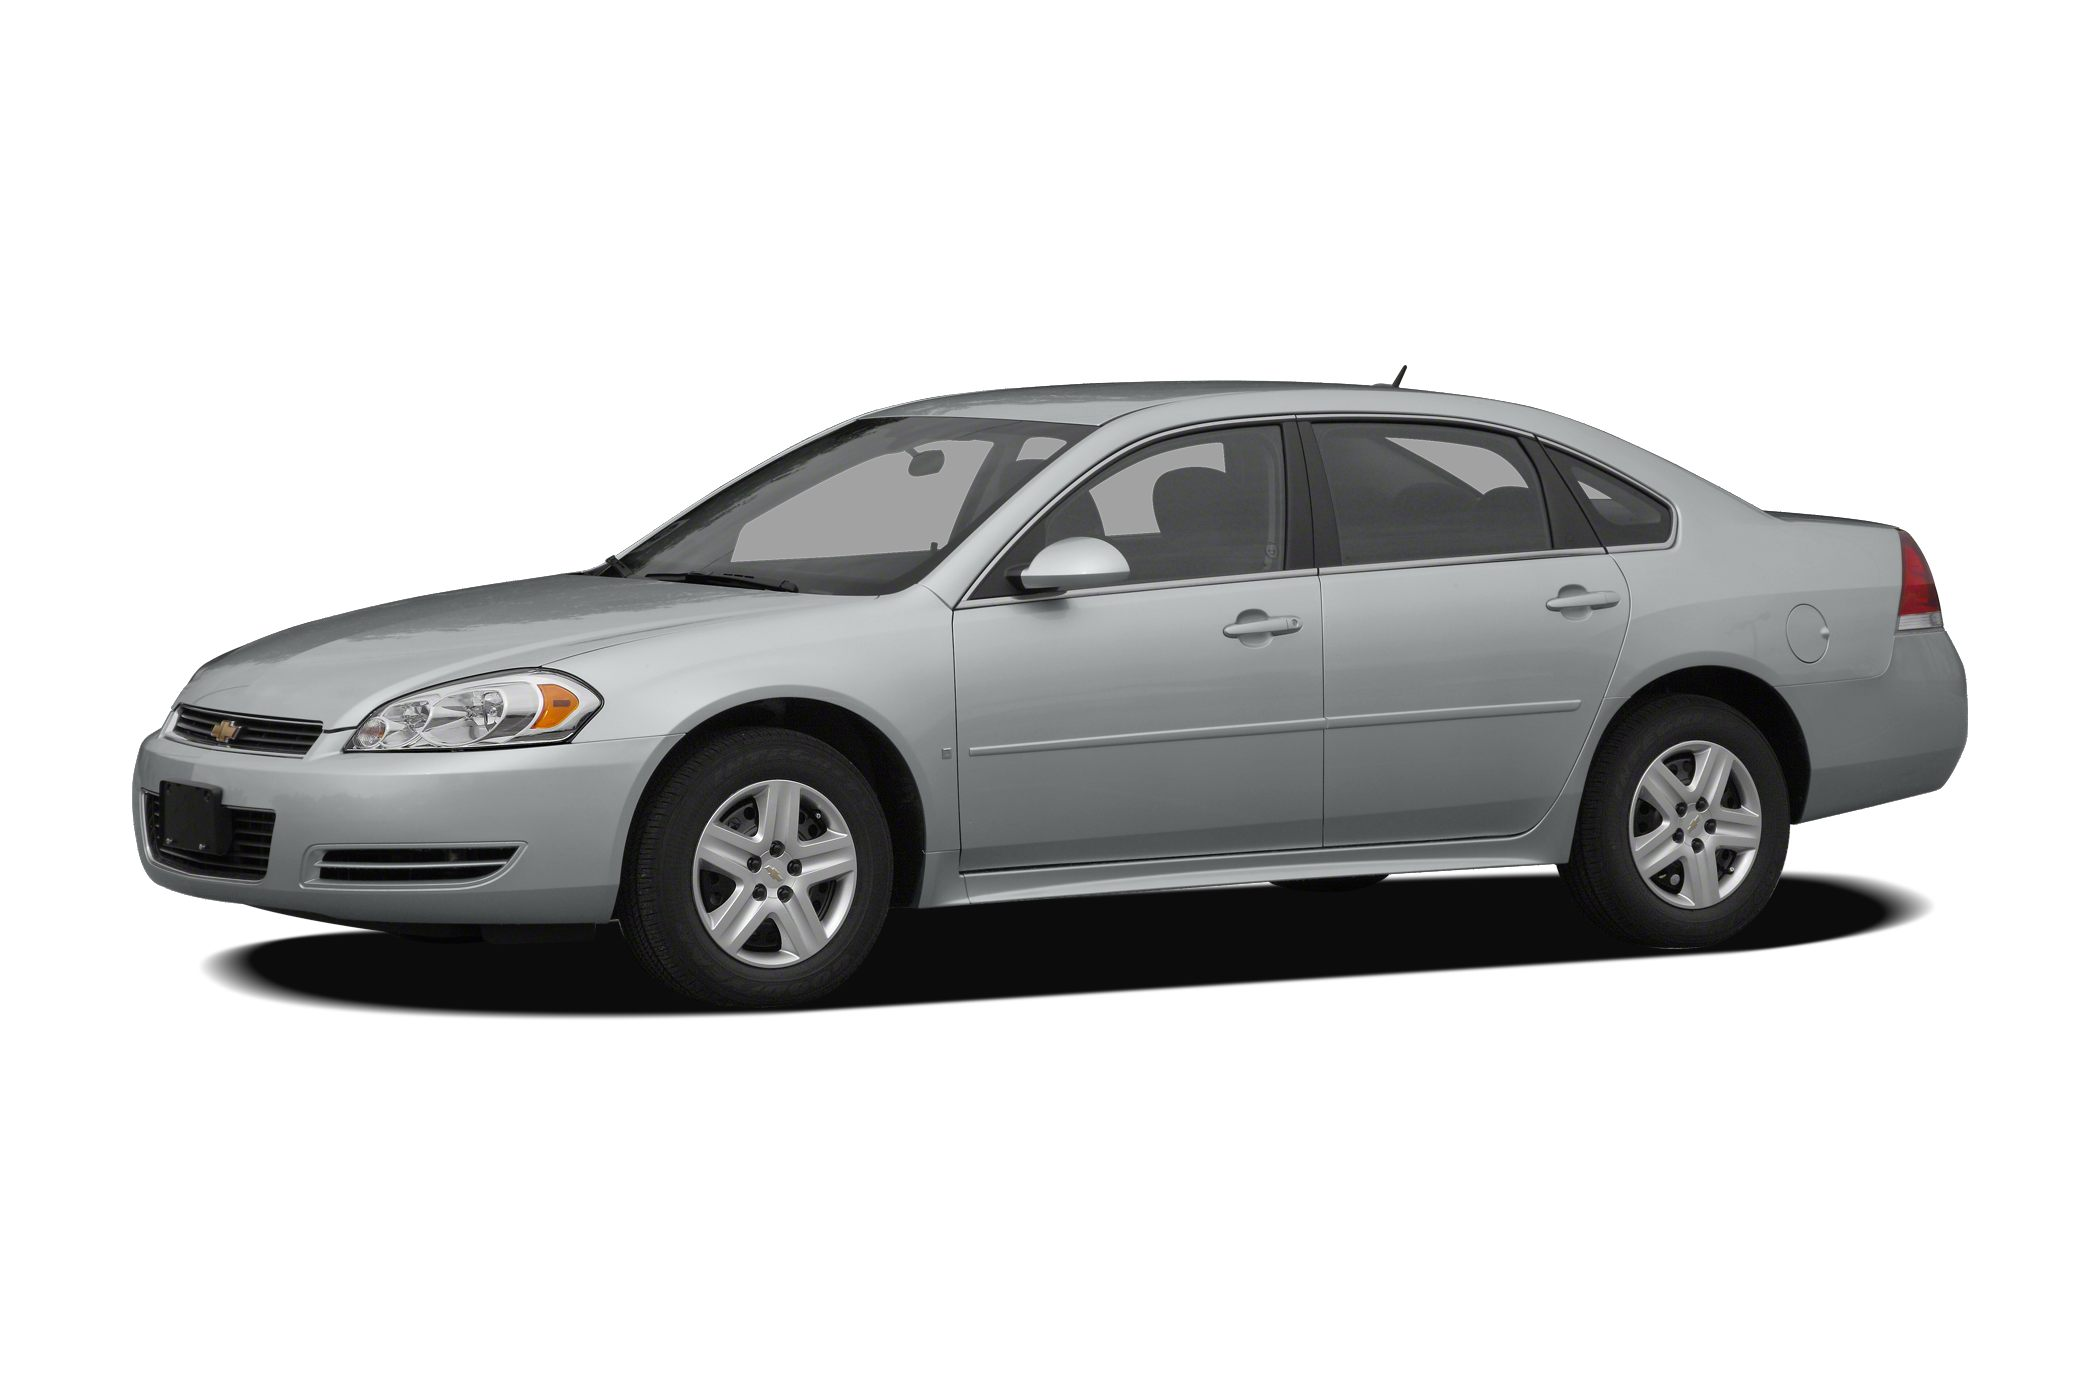 2011 Chevrolet Impala LT Sedan for sale in Daphne for $9,500 with 107,151 miles